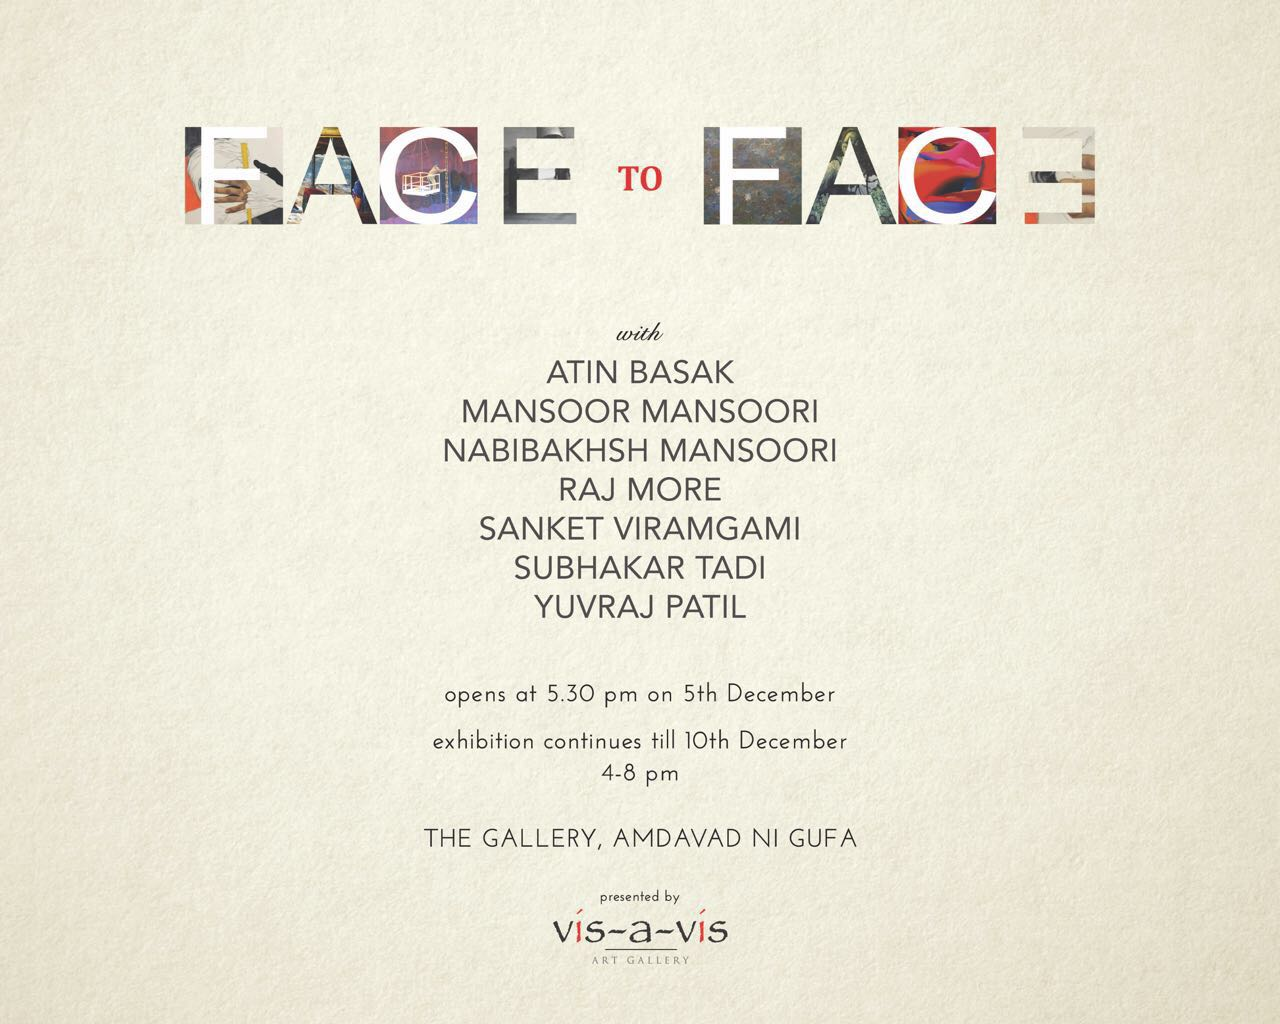 https://creativeyatra.com/wp-content/uploads/2017/12/Face-to-Face-an-Art-Event-at-The-Gallery-Amdavad-ni-Gufa.jpeg